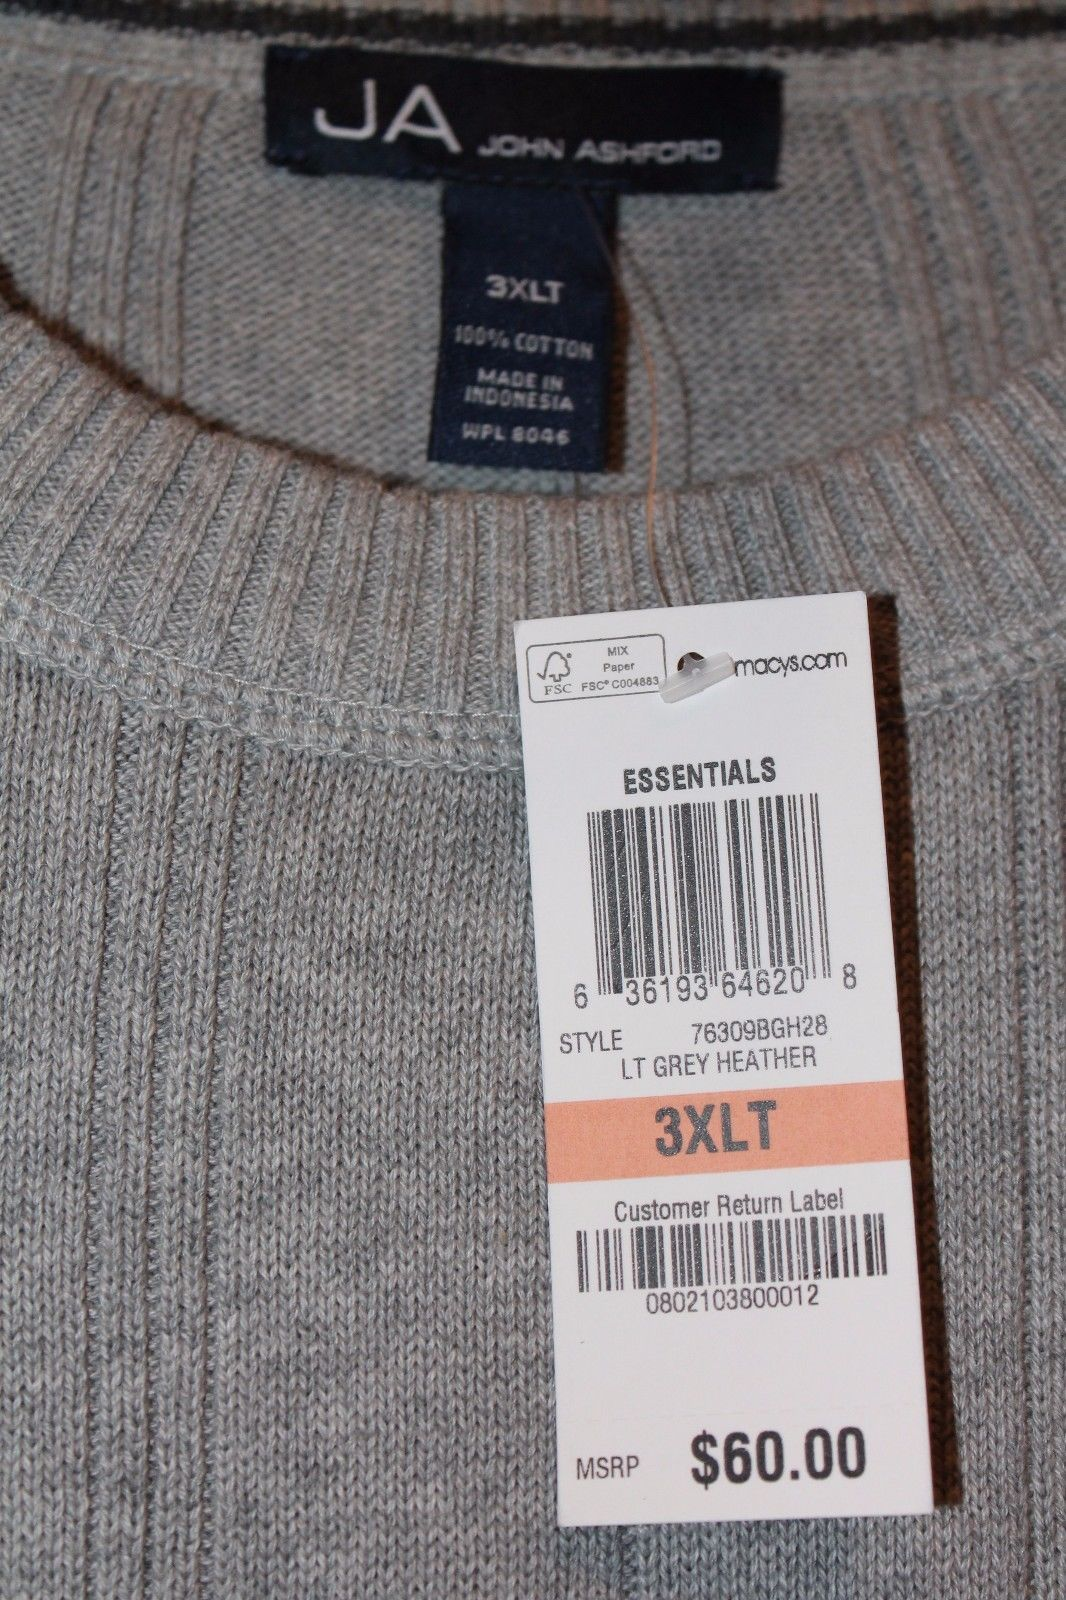 NEW WITH TAGS MENS JOHN ASHFORD SIZE 3XB 3XL RED RIBBED CREW NECK SWEATER